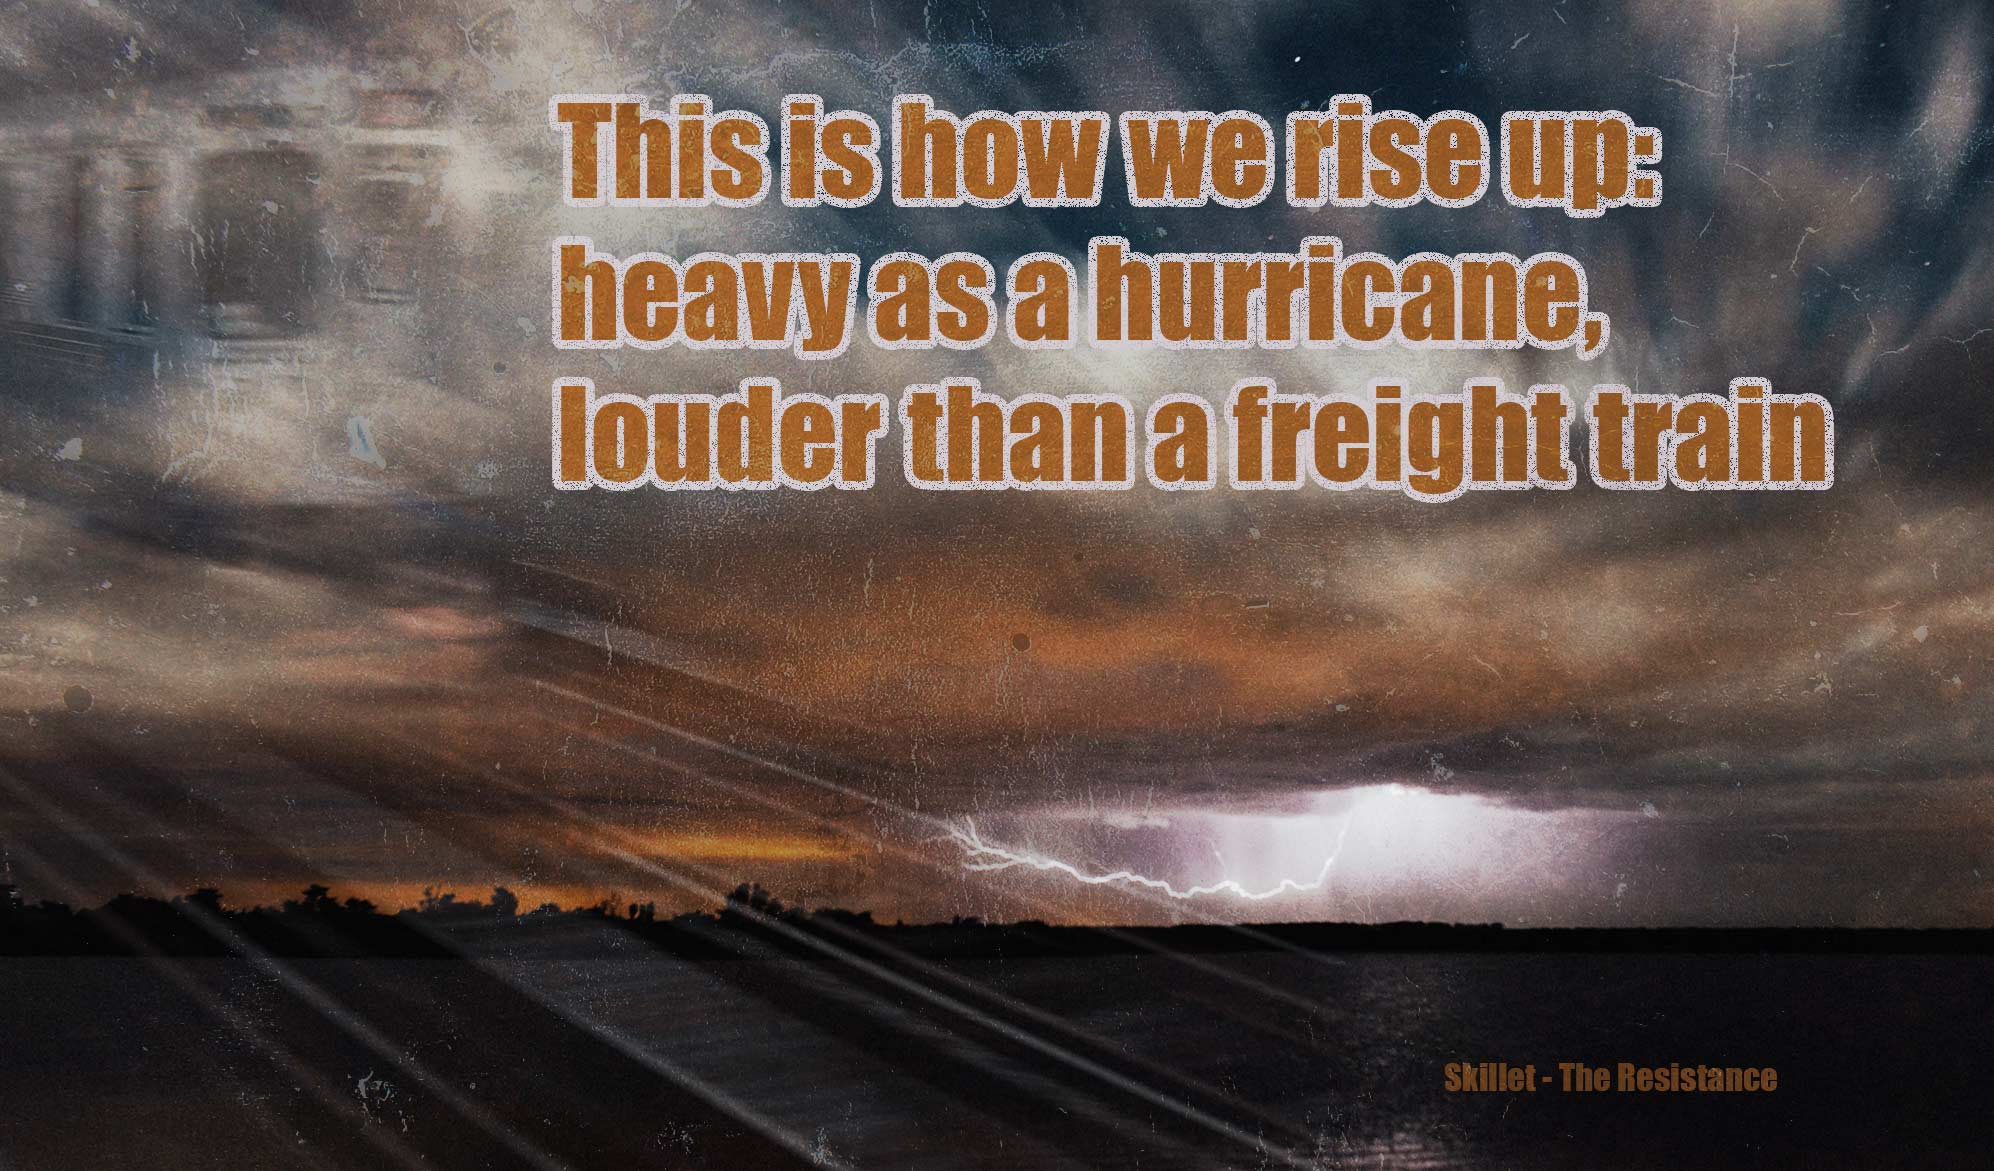 daily inspirational quote image: a stormy sky with lighting and a freight train overimposed